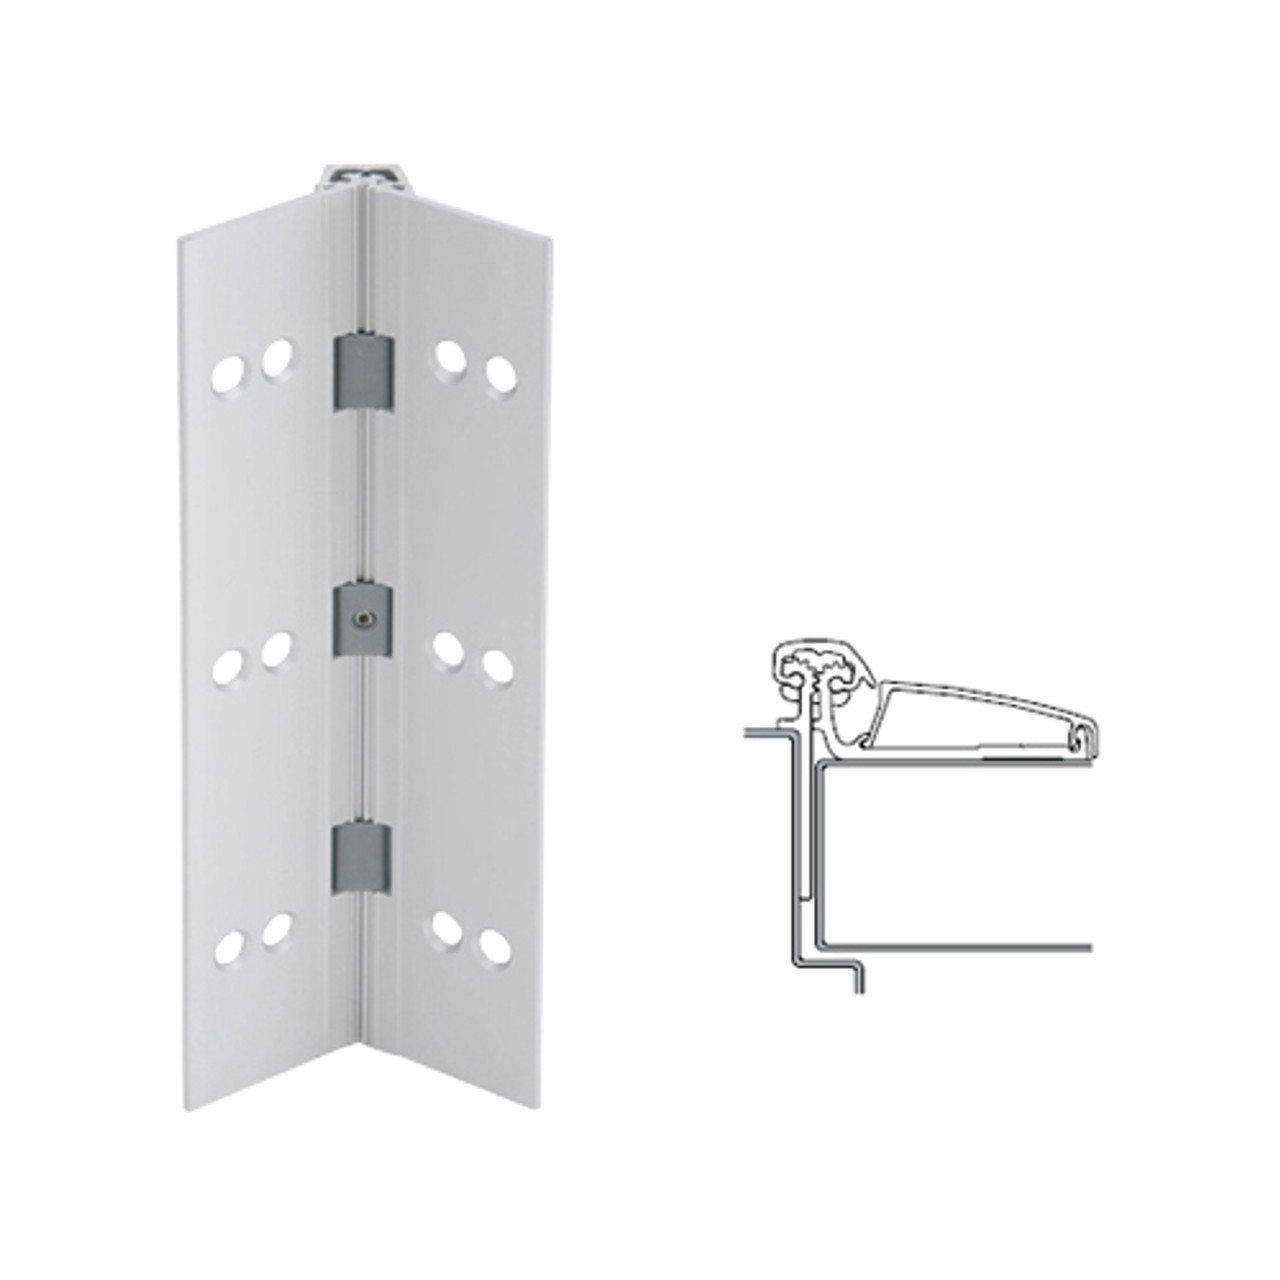 045XY-US28-95-TEKWD IVES Adjustable Half Surface Continuous Geared Hinges with Wood Screws in Satin Aluminum